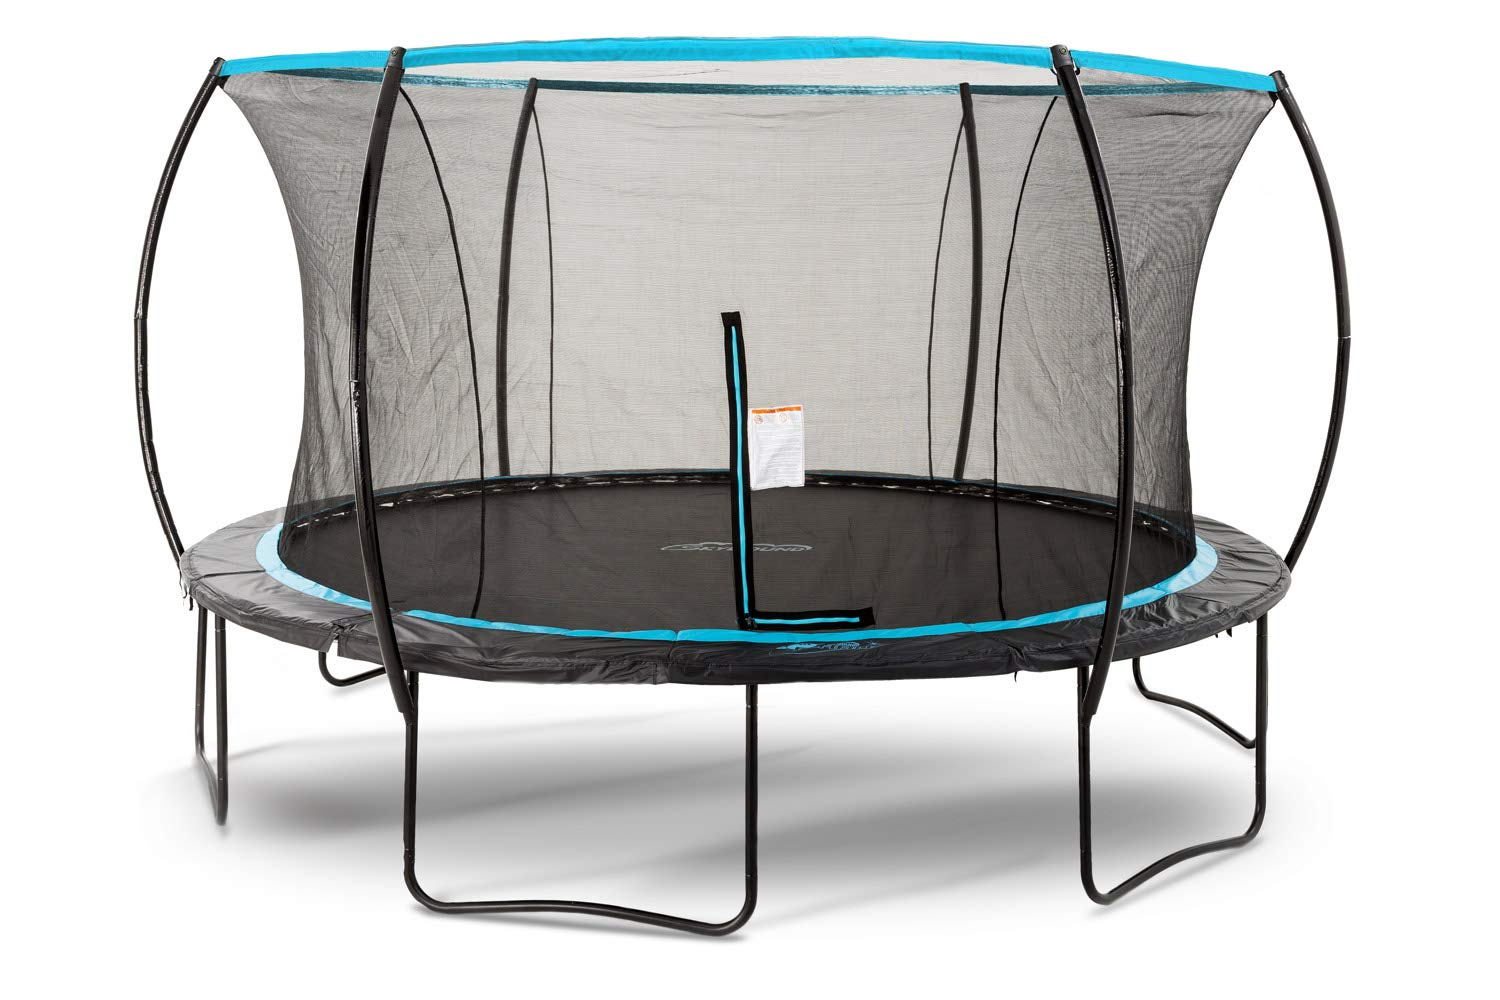 SkyBound Cirrus 14 ft Trampoline – Easiest Installation